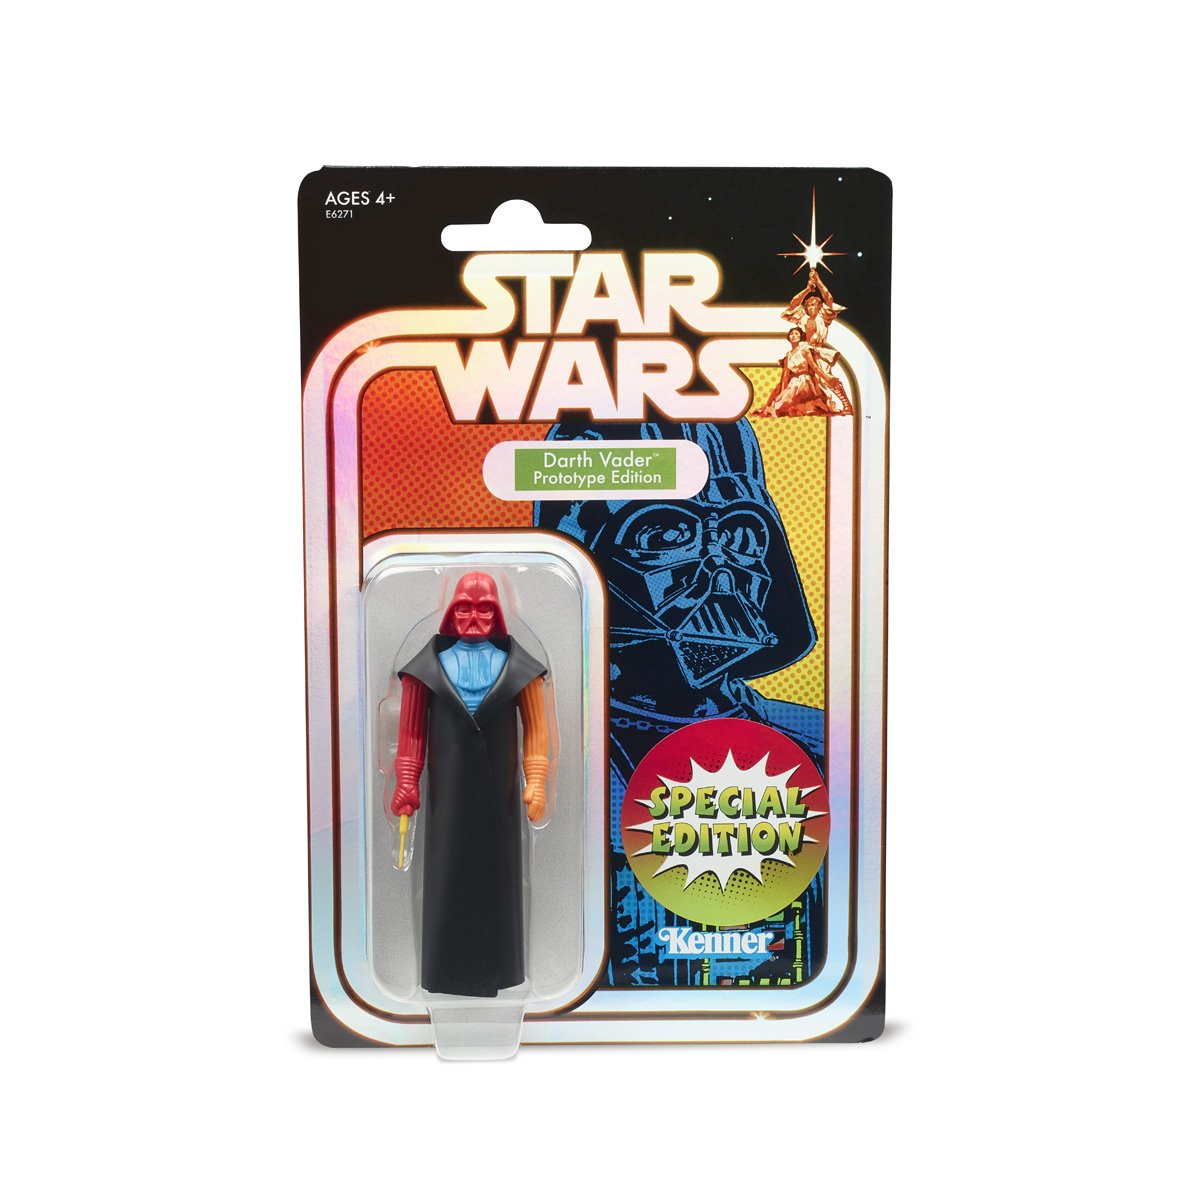 star-wars-special-edition-retro-prototype-3-75-inch-darth-vader-figure-in-pack-1